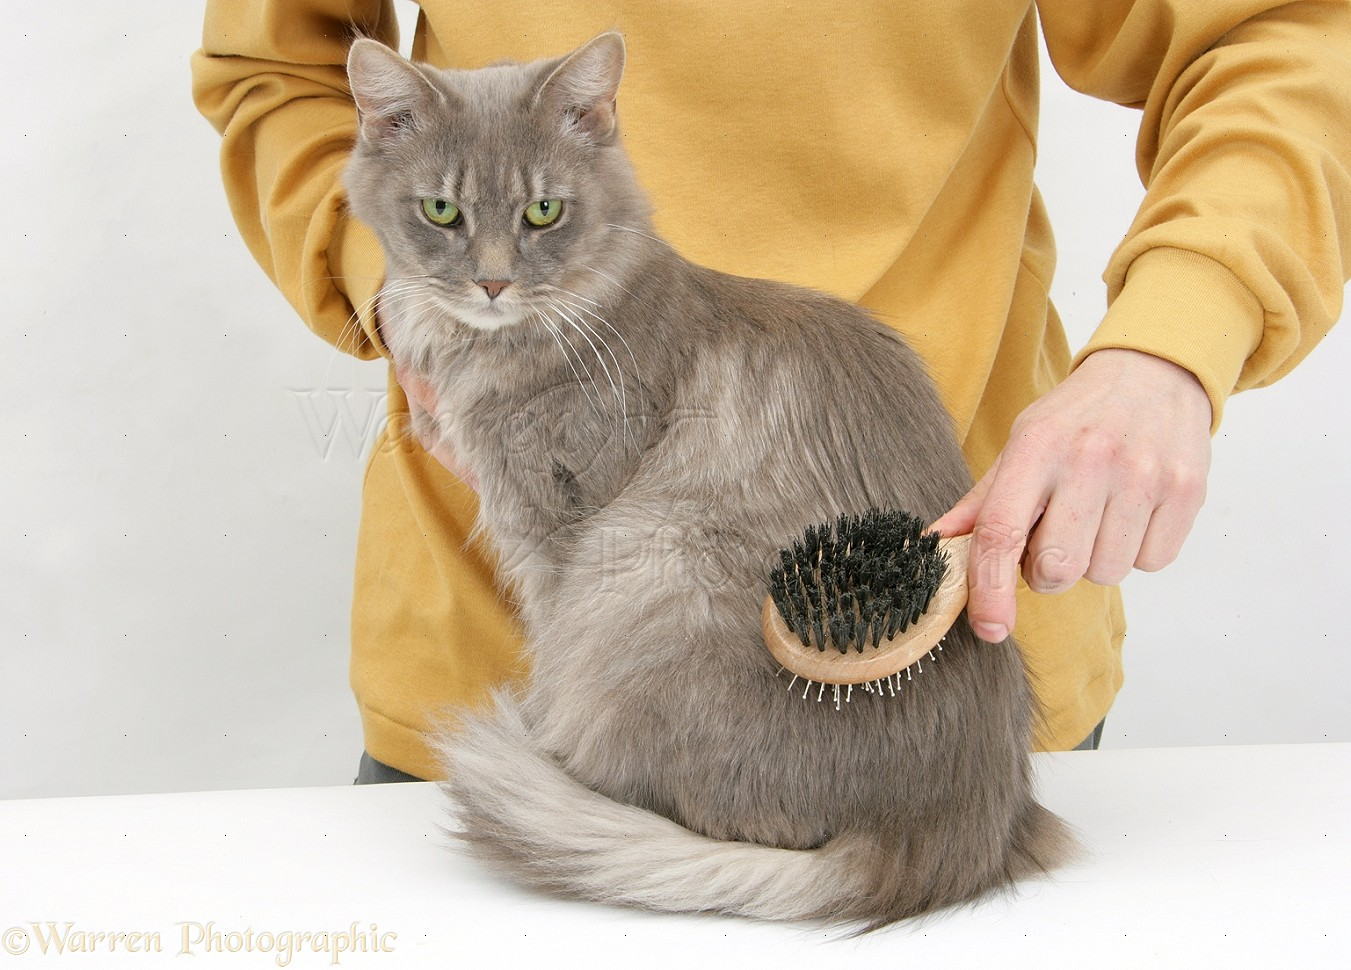 Cat Grooming Best Images Collections Hd For Gadget